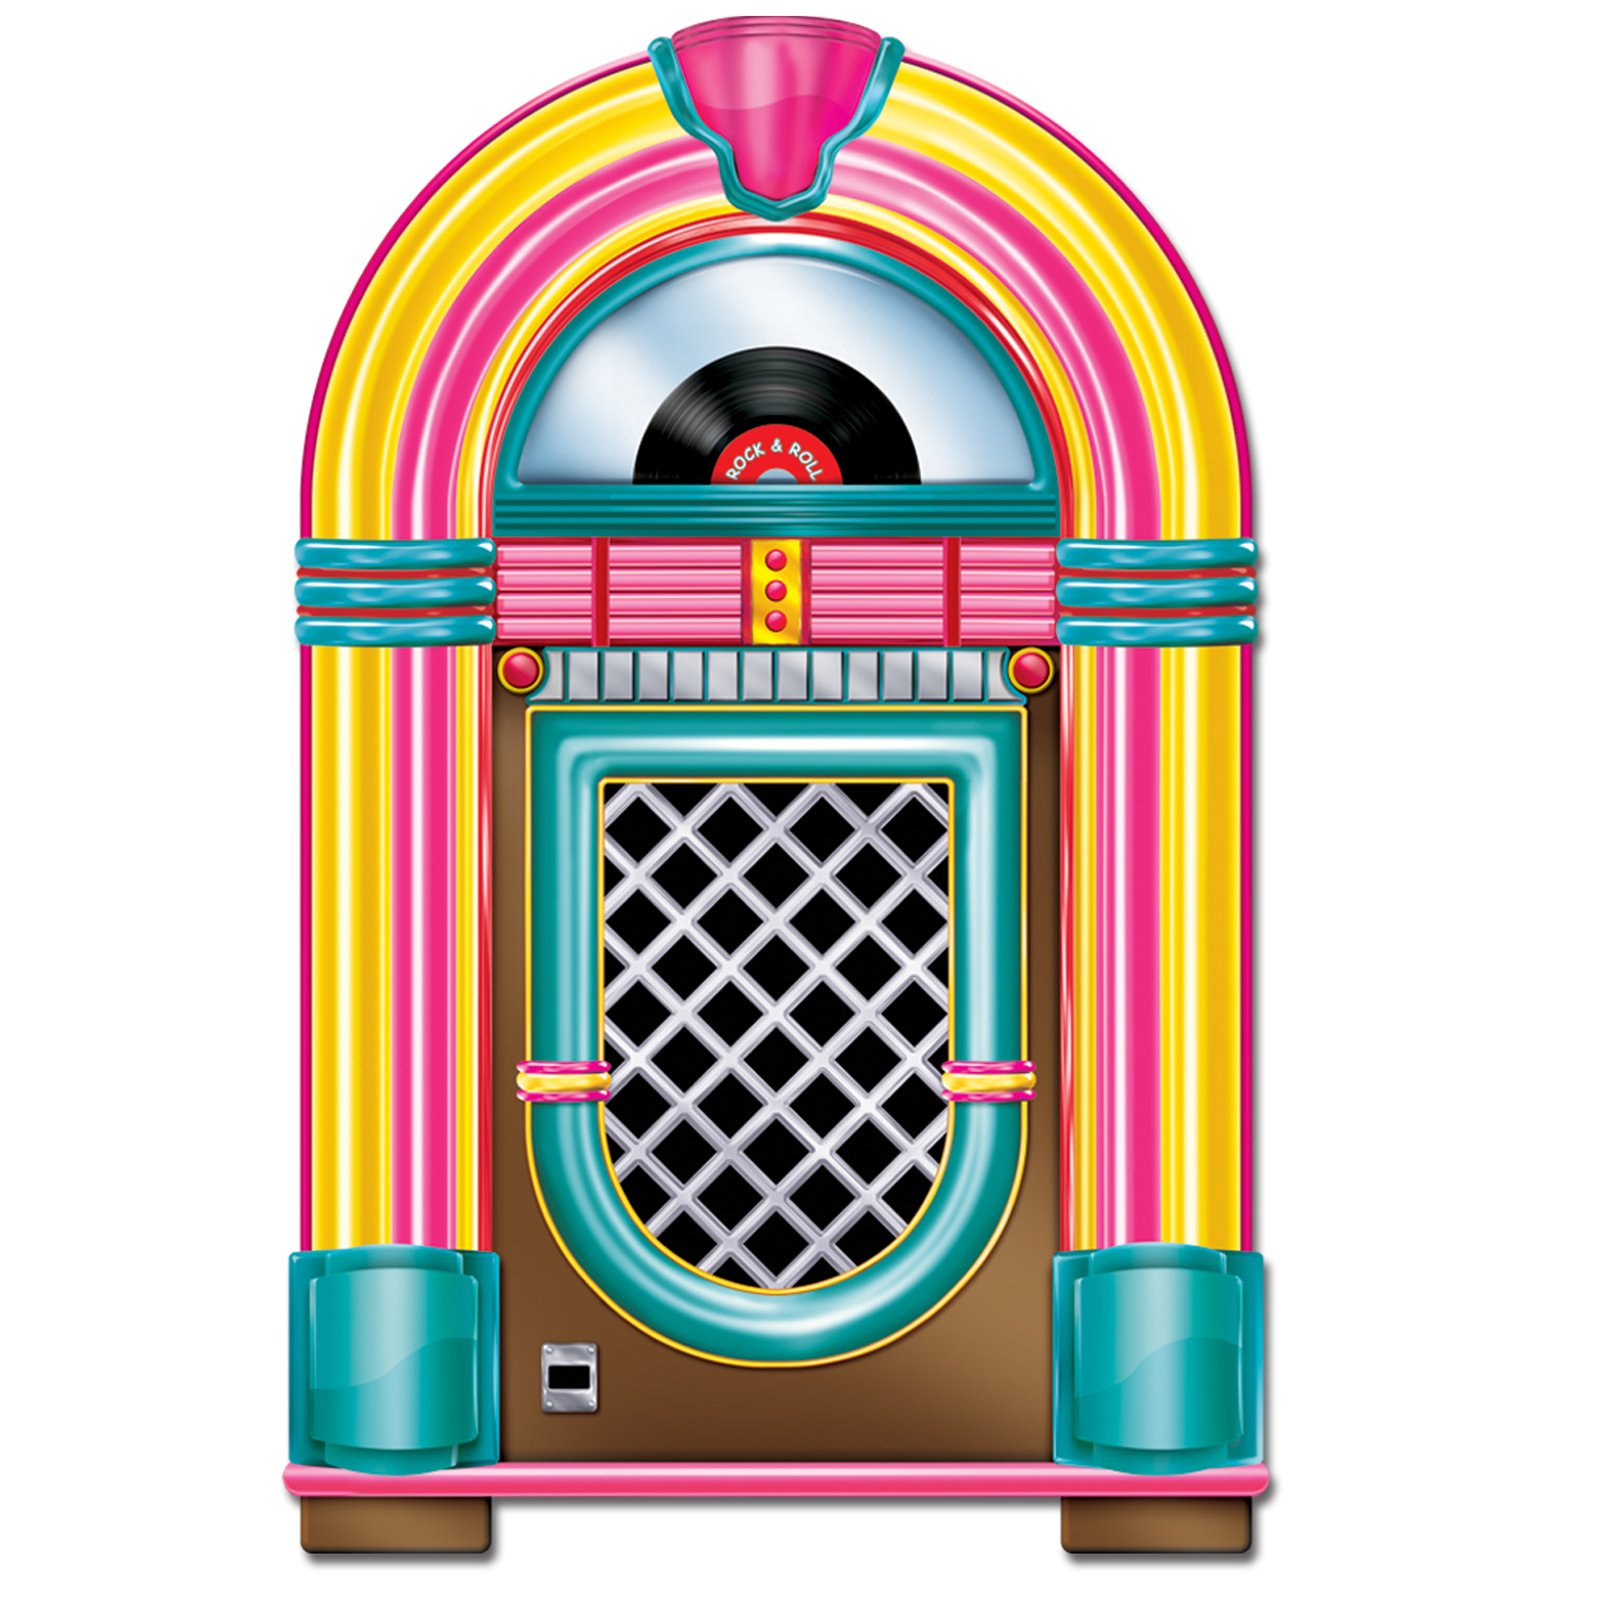 Jukebox Clipart   Clipart Best